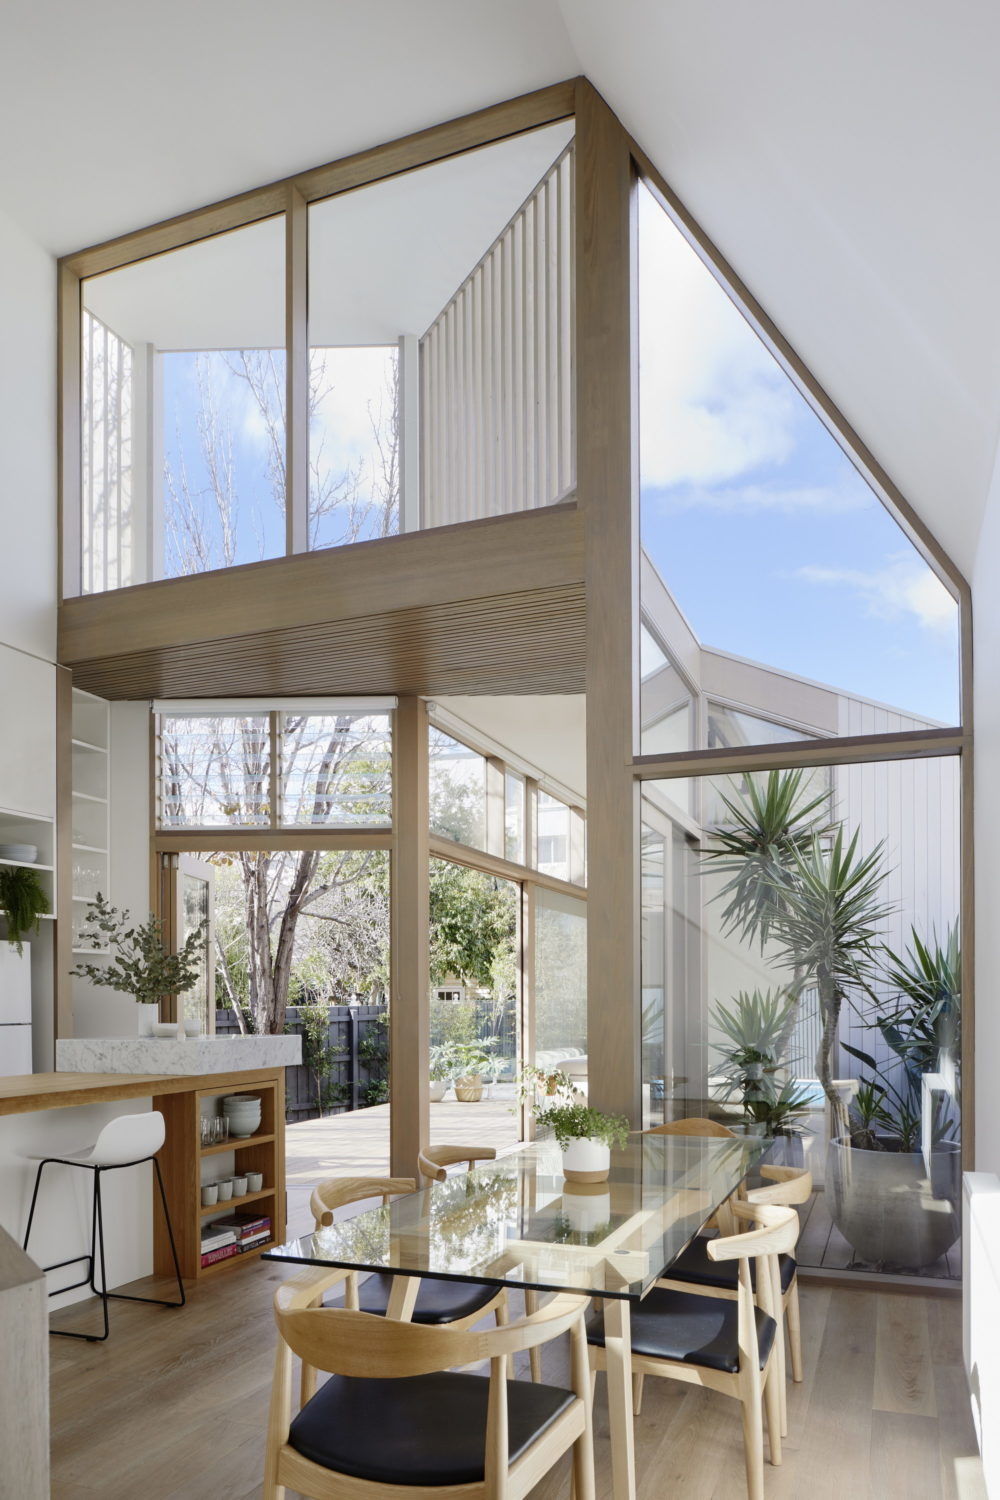 Tess + JJ's House   Narrow House by po-co Architecture